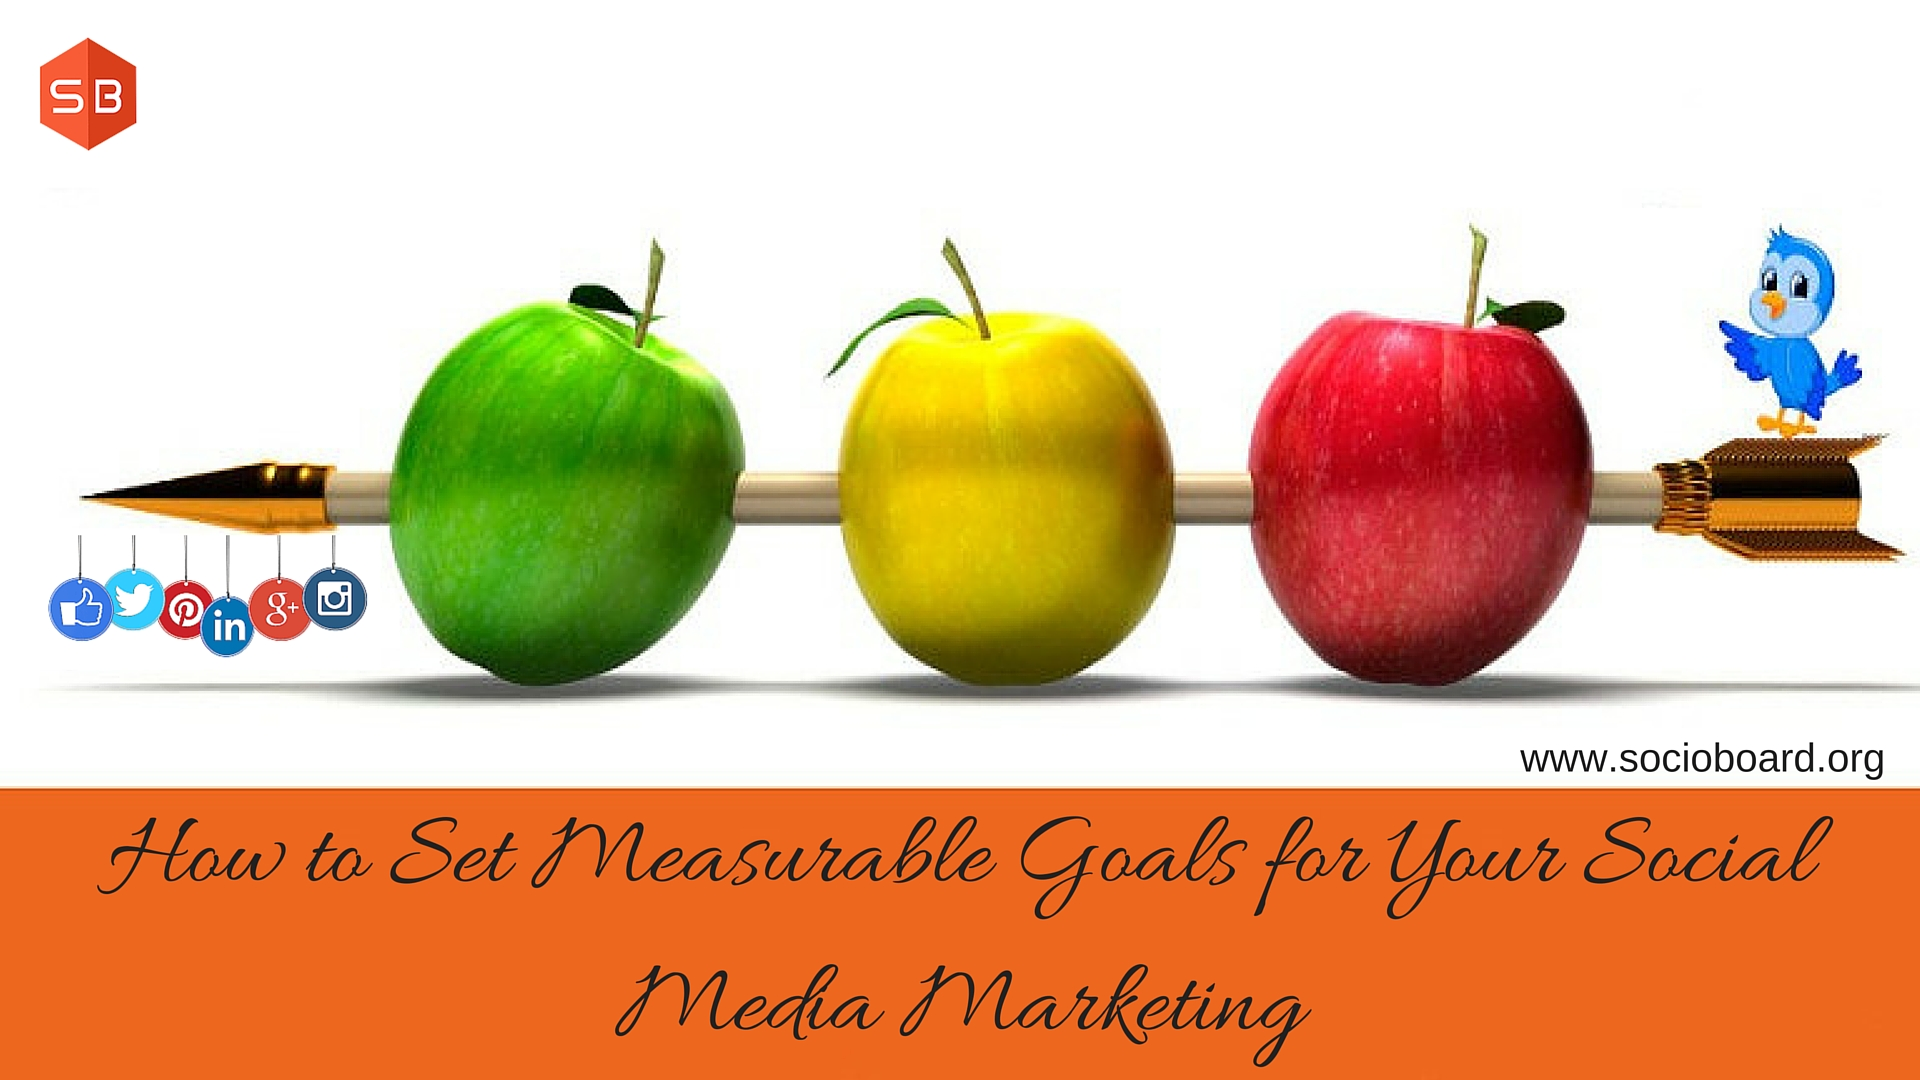 How to Set Measurable Goals for Your Social Media Marketing?